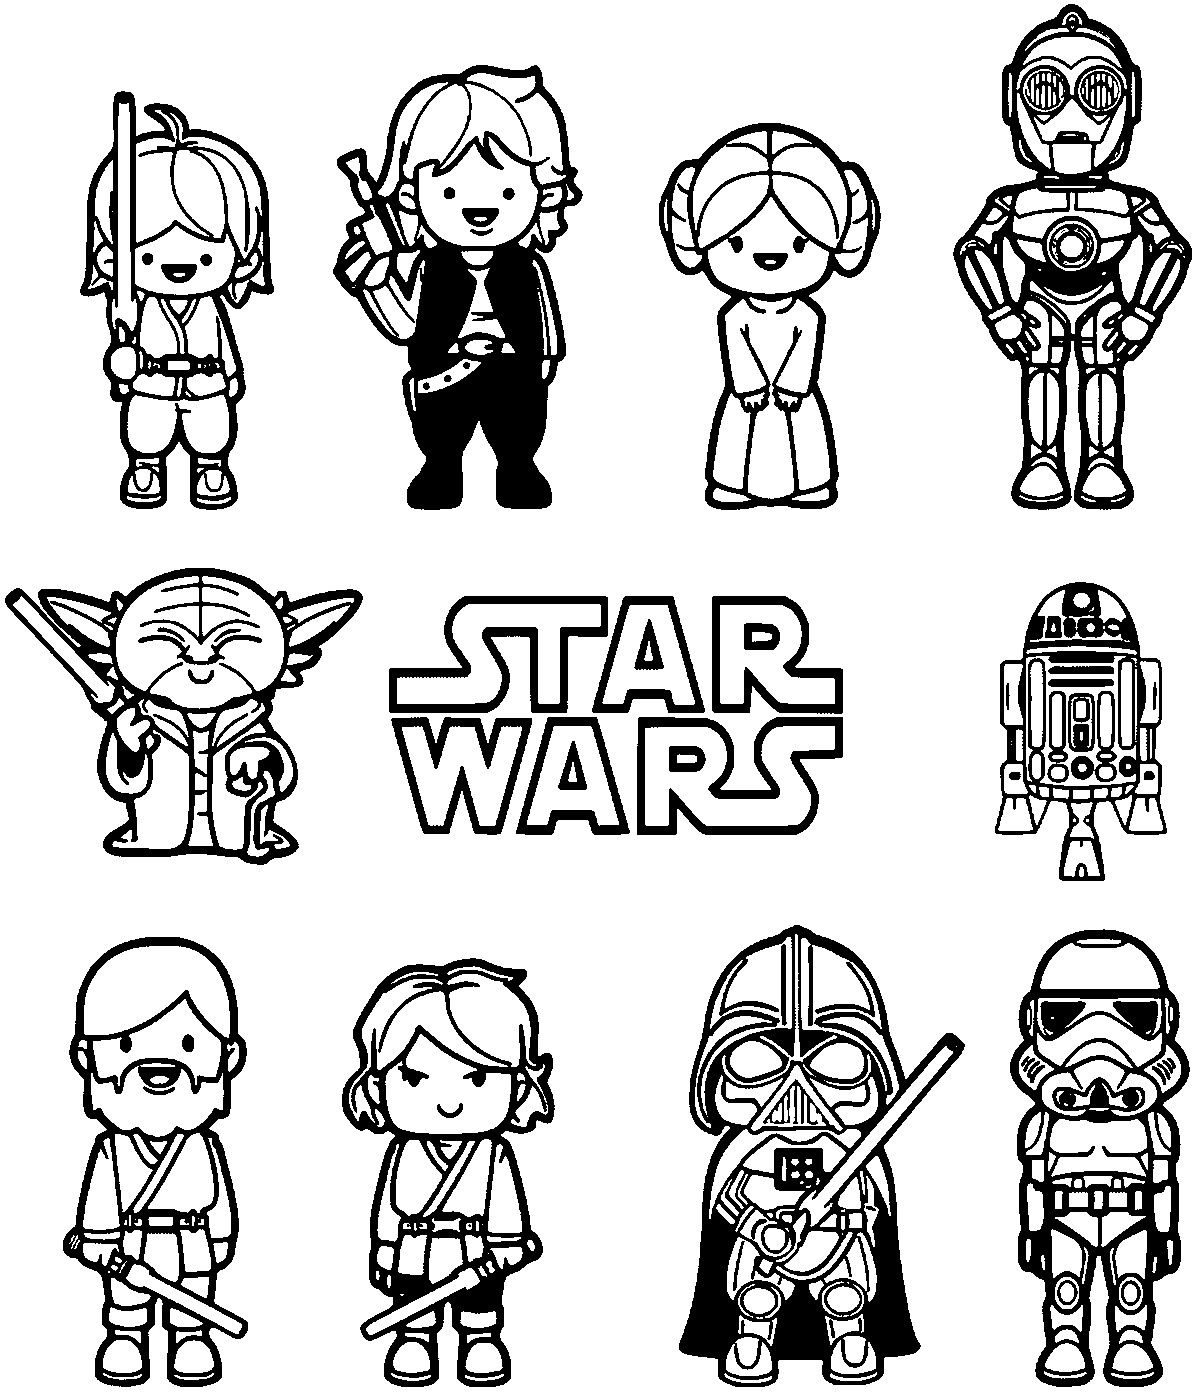 Lego Princess Leia Coloring Pages Awesome Star Wars Coloring Pages Luke Skywalker Star Wars Colorin Star Wars Coloring Sheet Star Wars Colors Star Wars Cartoon